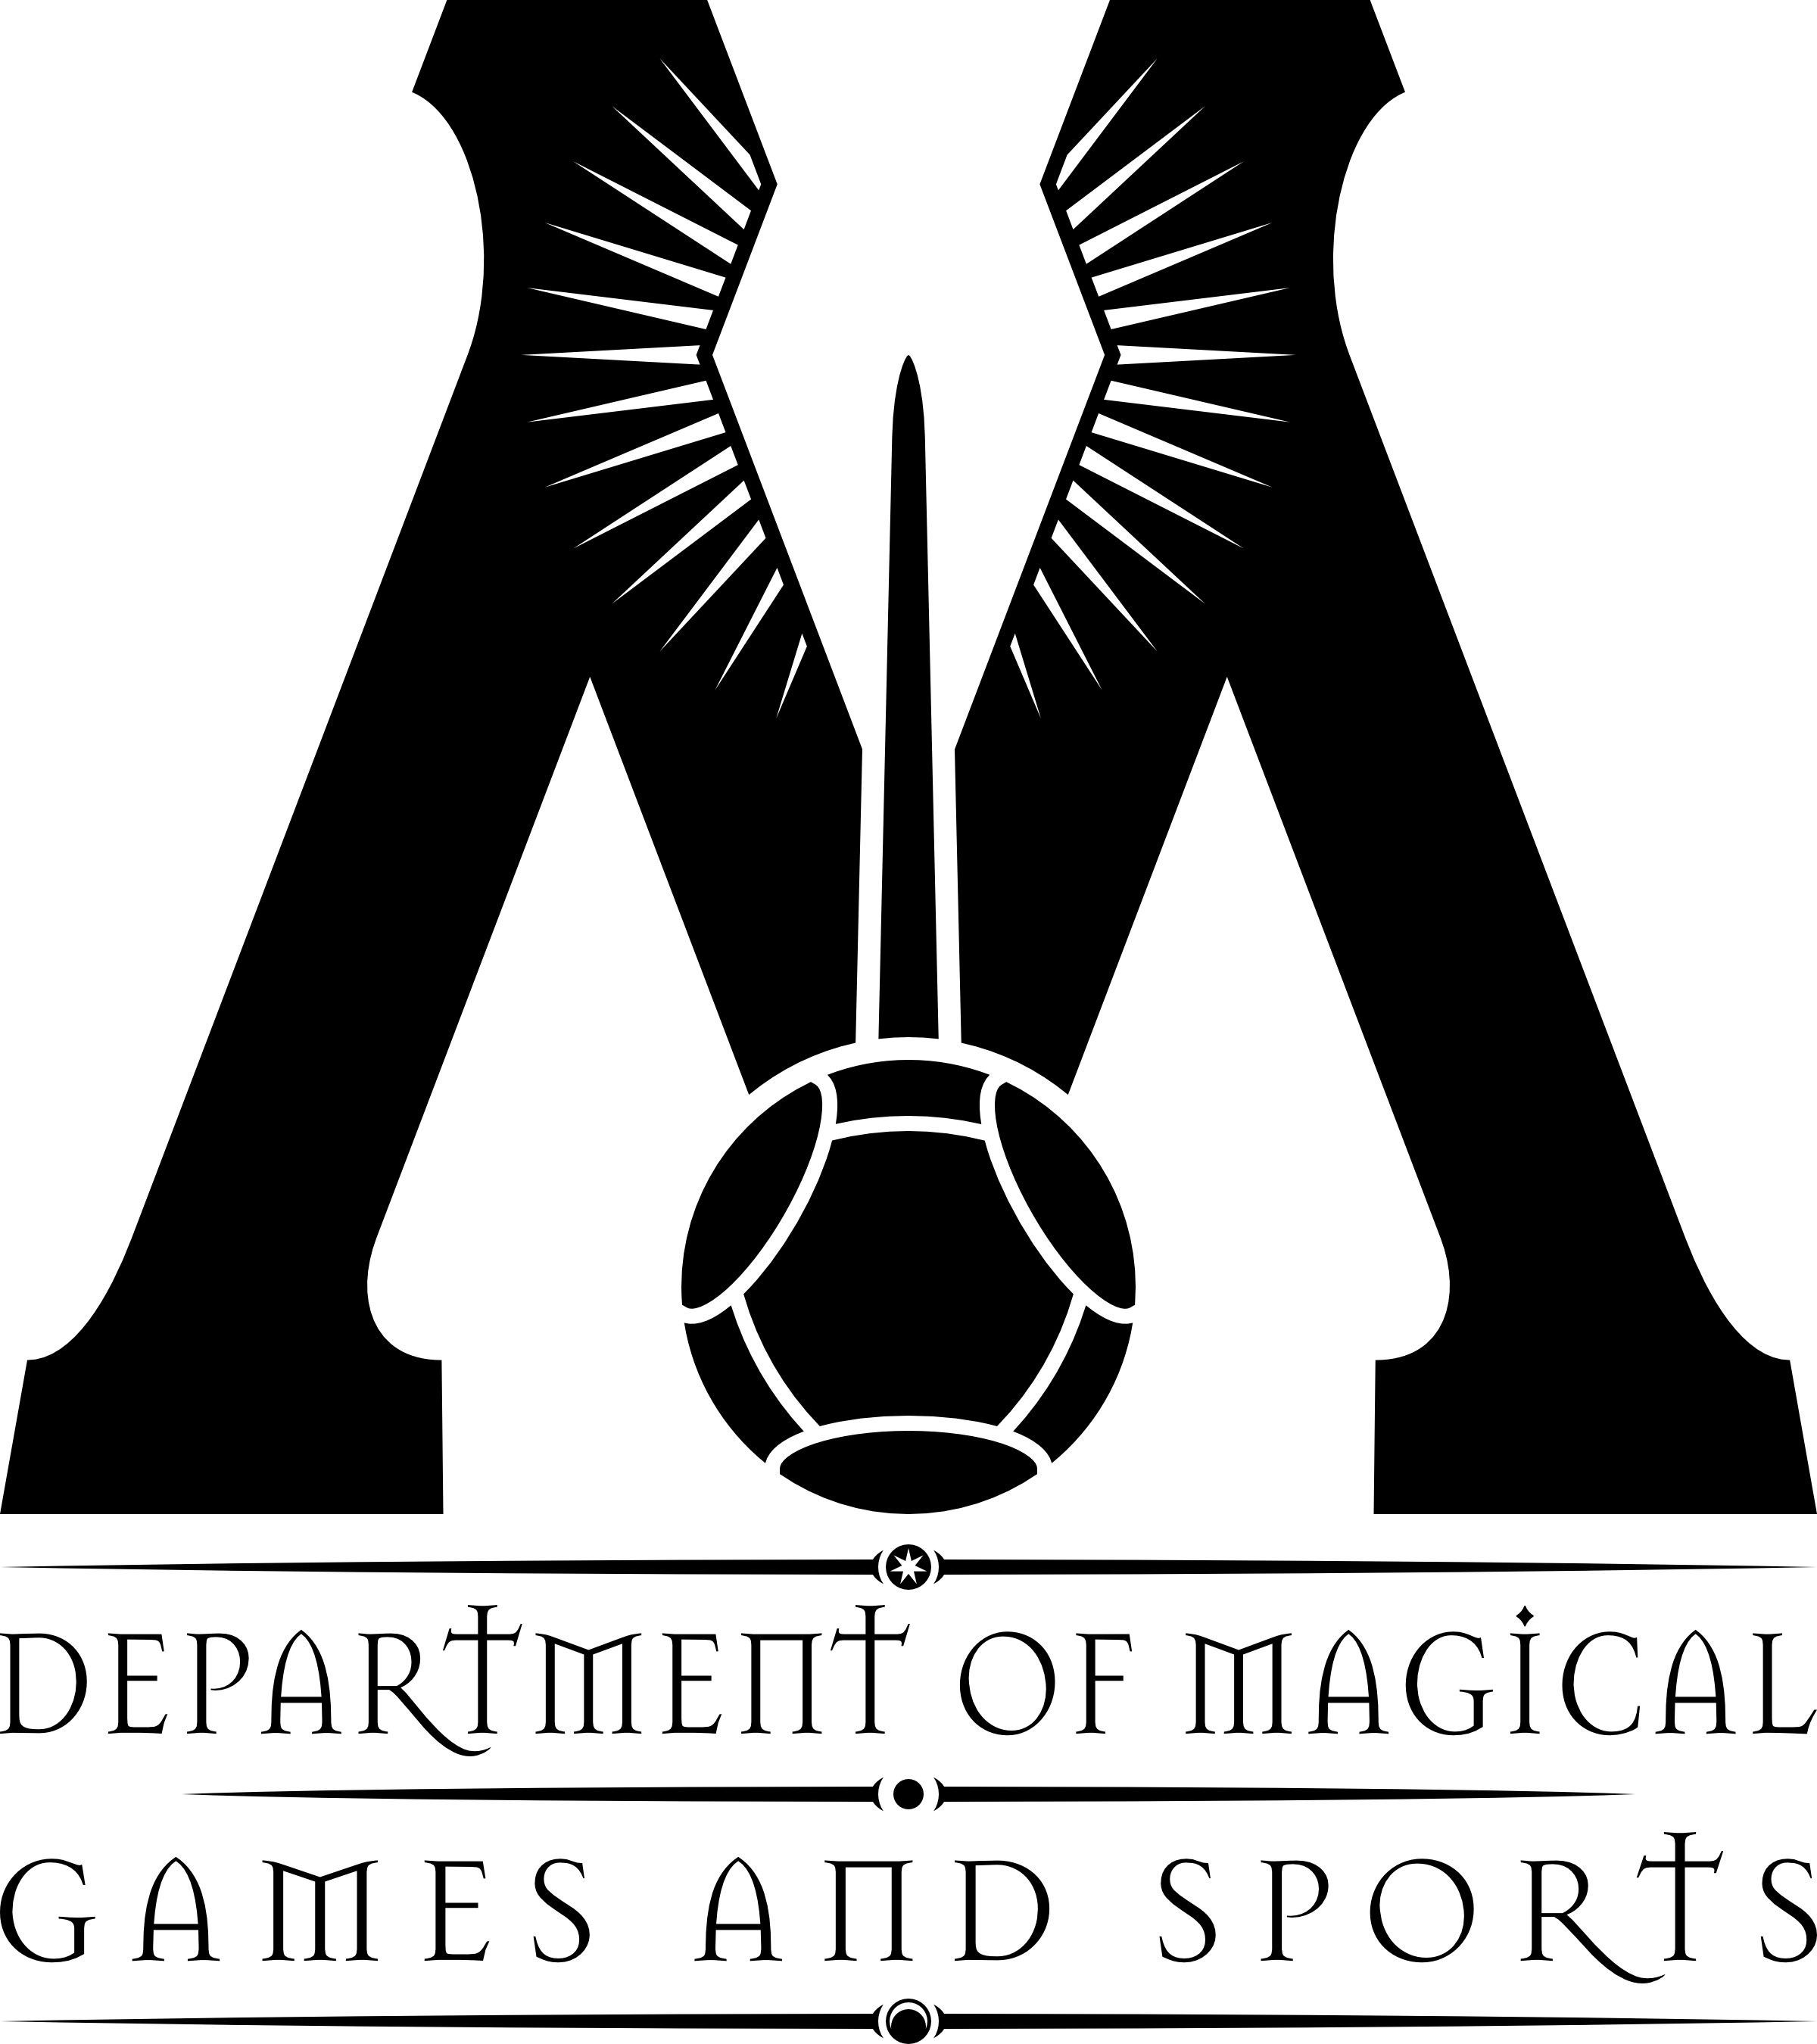 Department of Magical Games and Sports logo by kriss80858